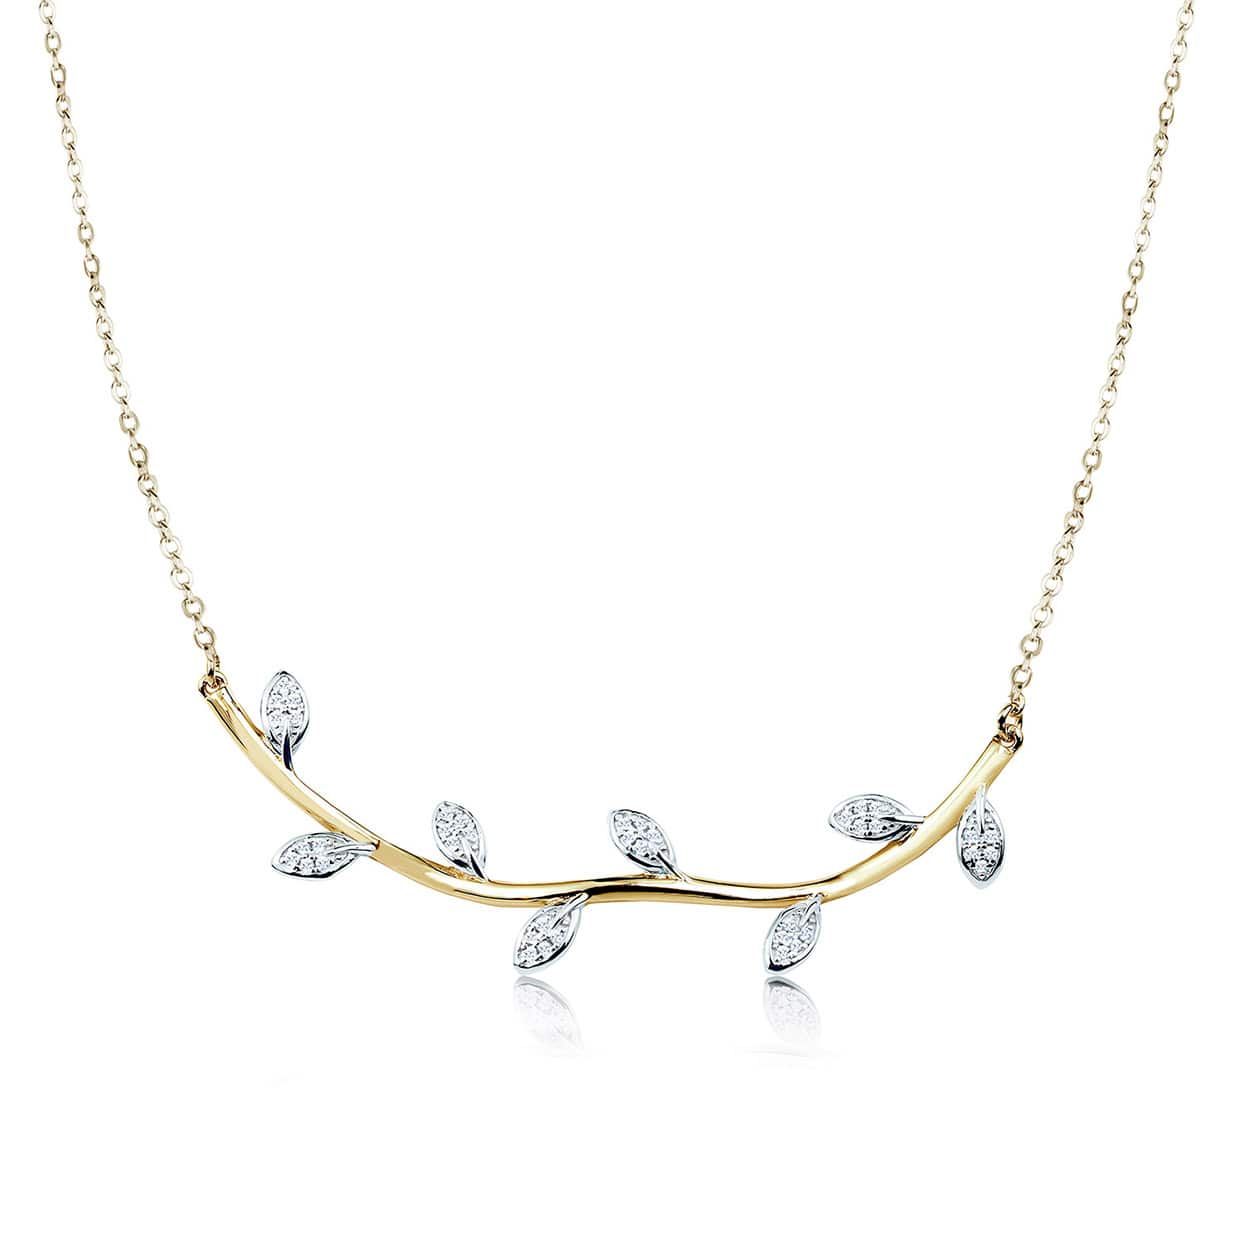 Flora Simple Gold Leaf Necklace - Abelstedt